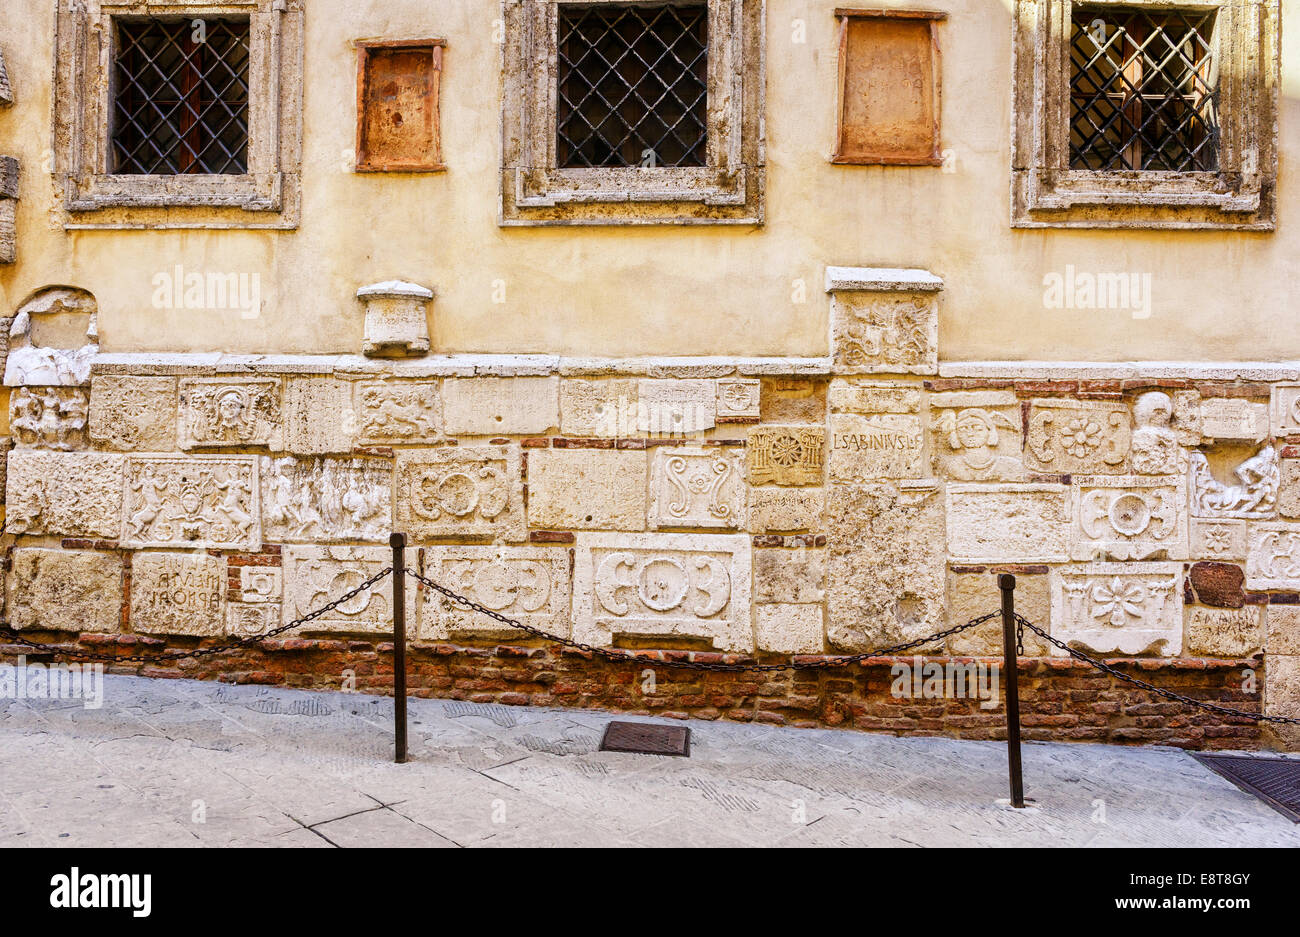 Roman or Etruscan reliefs on a the wall of Palazzo Bucelli in Montepulciano, Tuscany, Italy - Stock Image